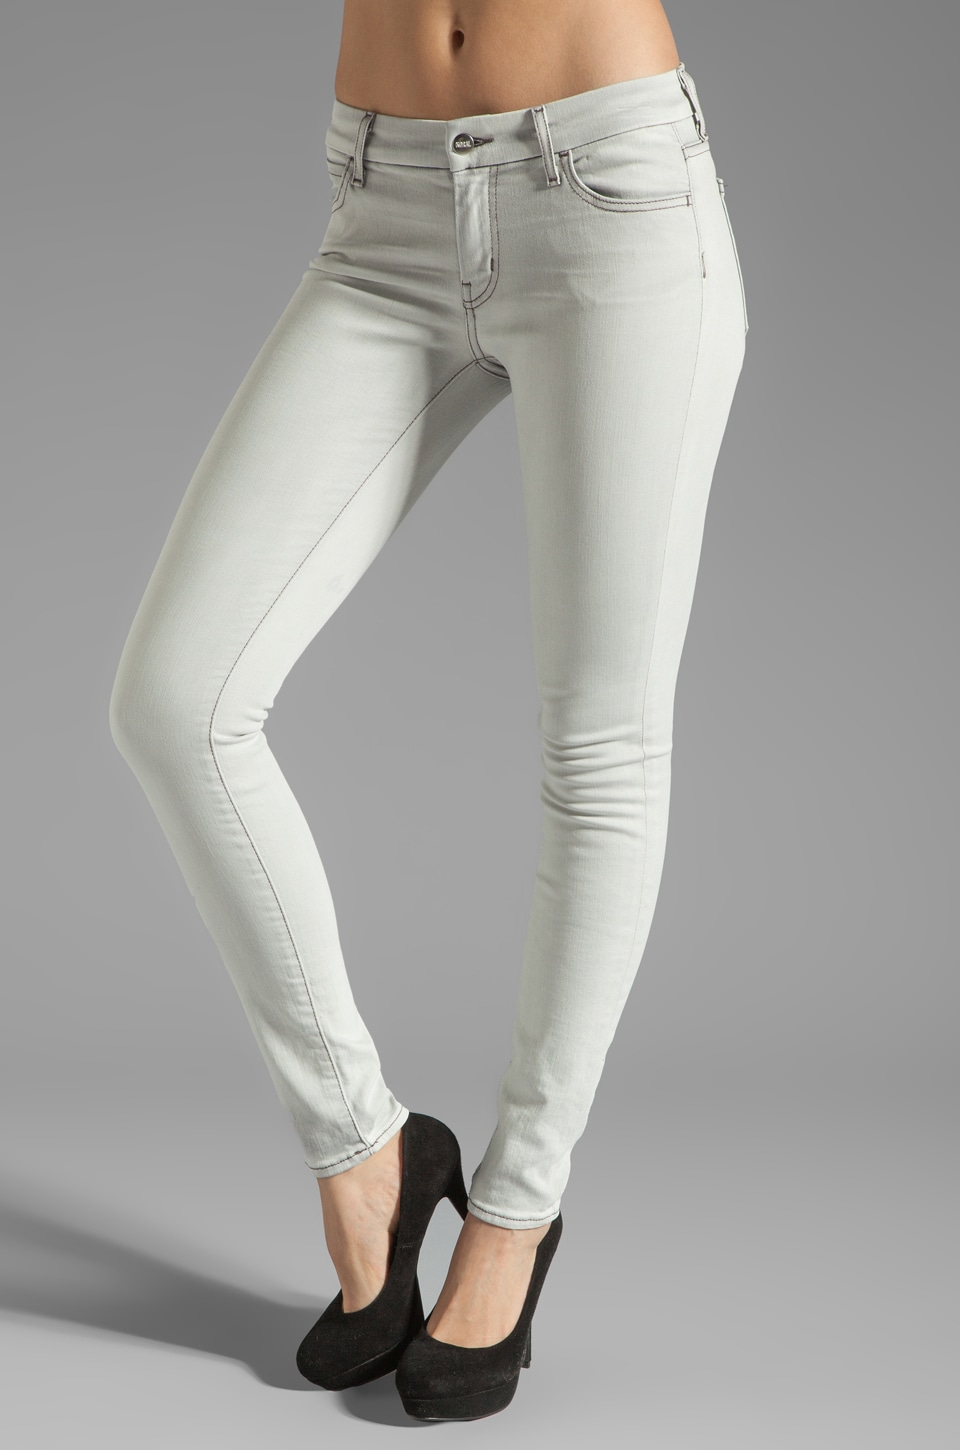 Koral White Wash Skinny in Light